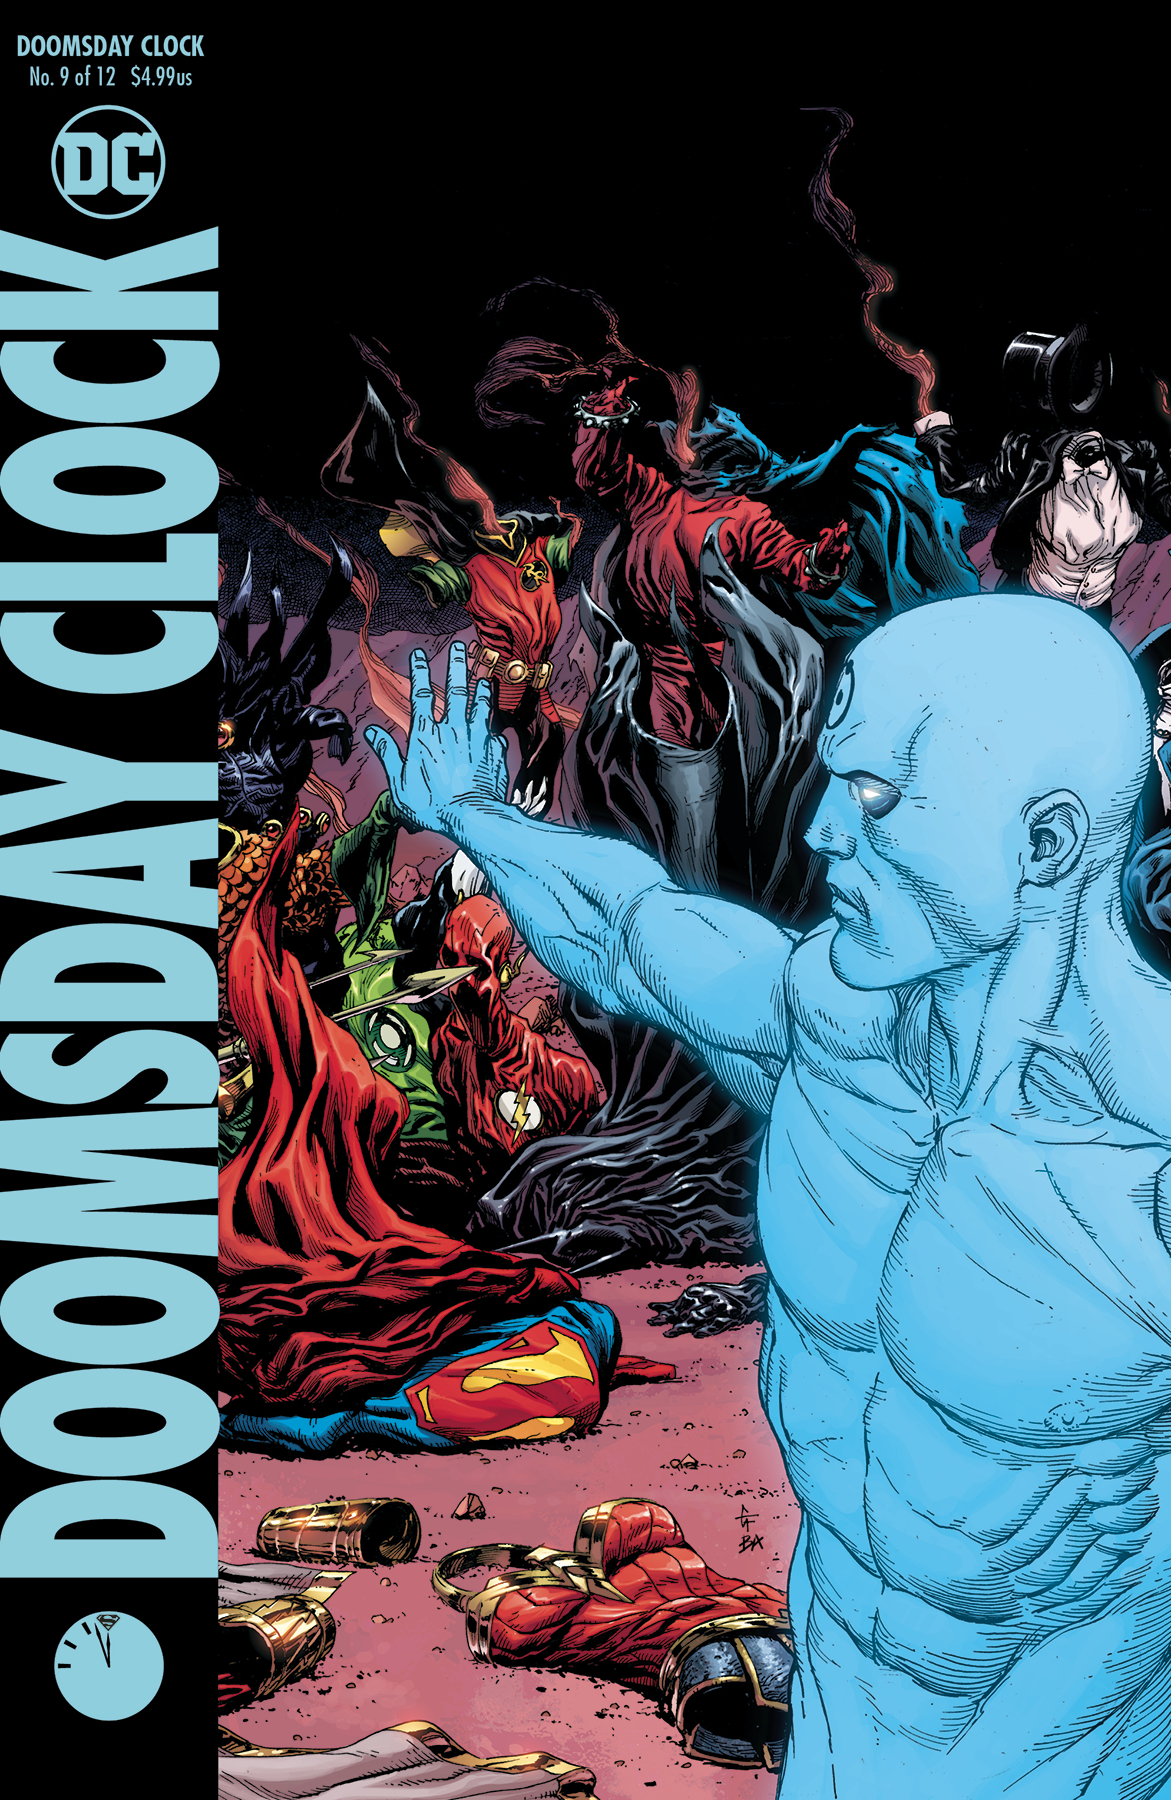 DOOMSDAY CLOCK #9 (OF 12) VAR ED